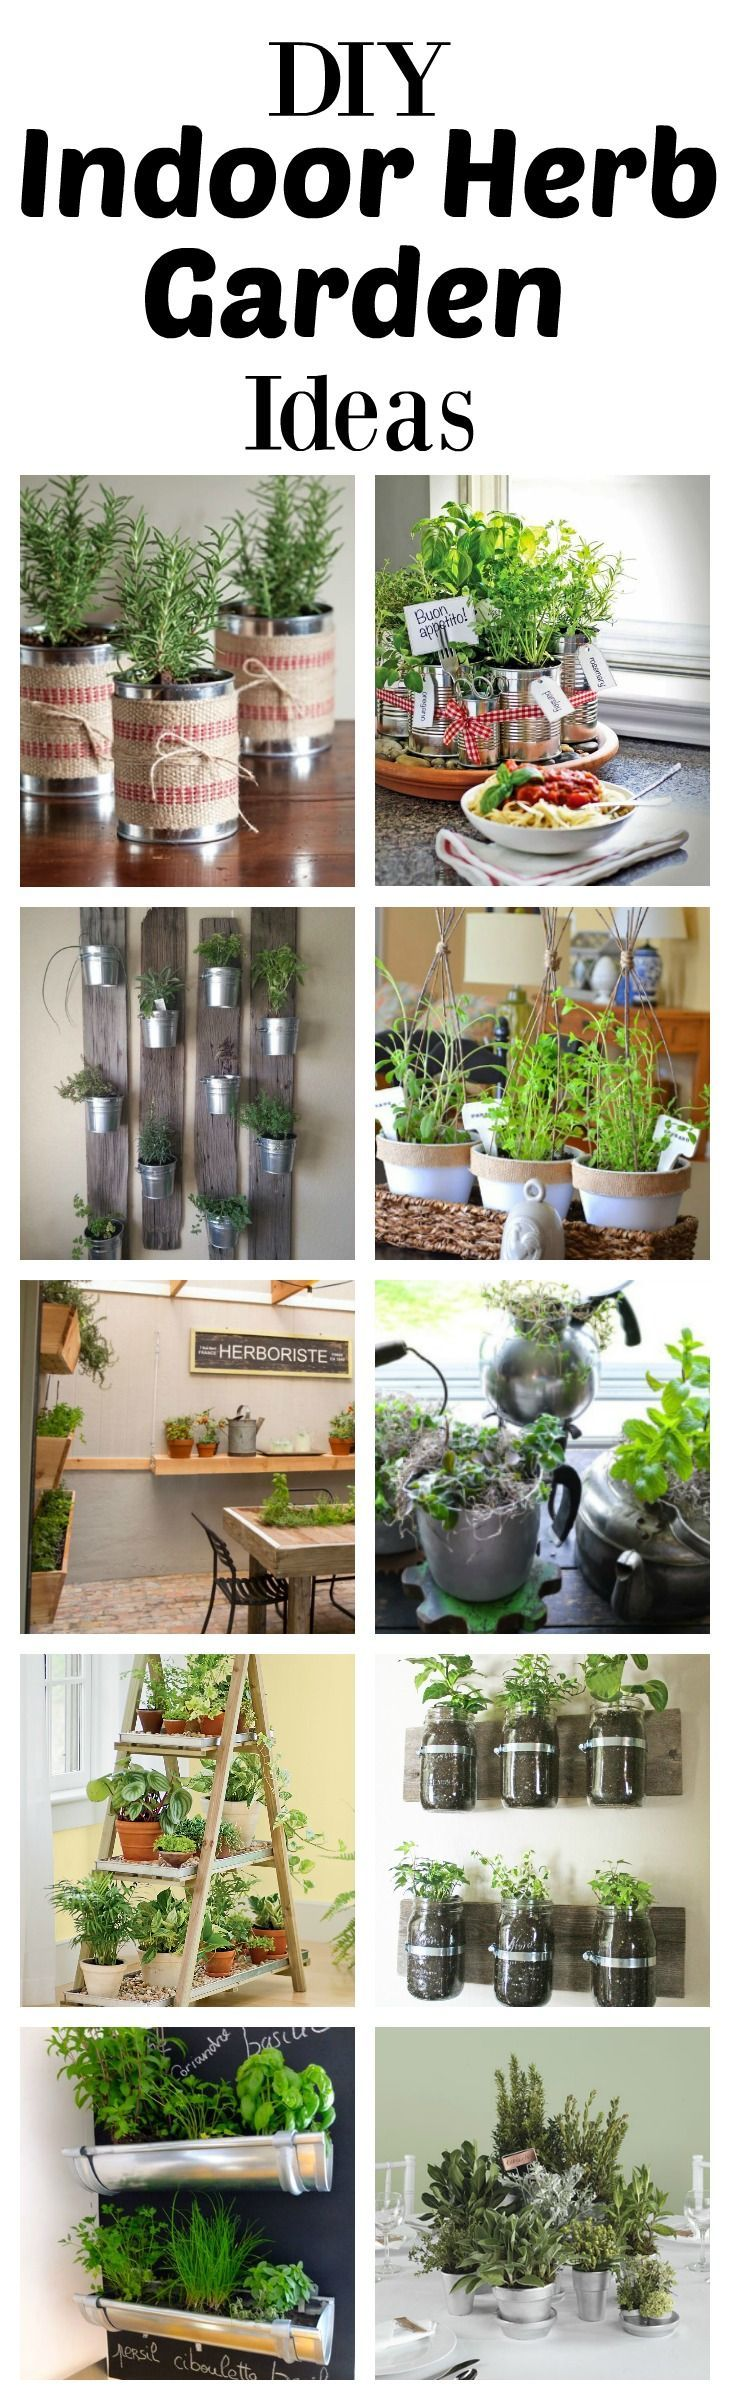 diy indoor herb garden ideas indoor herbs herbs garden and